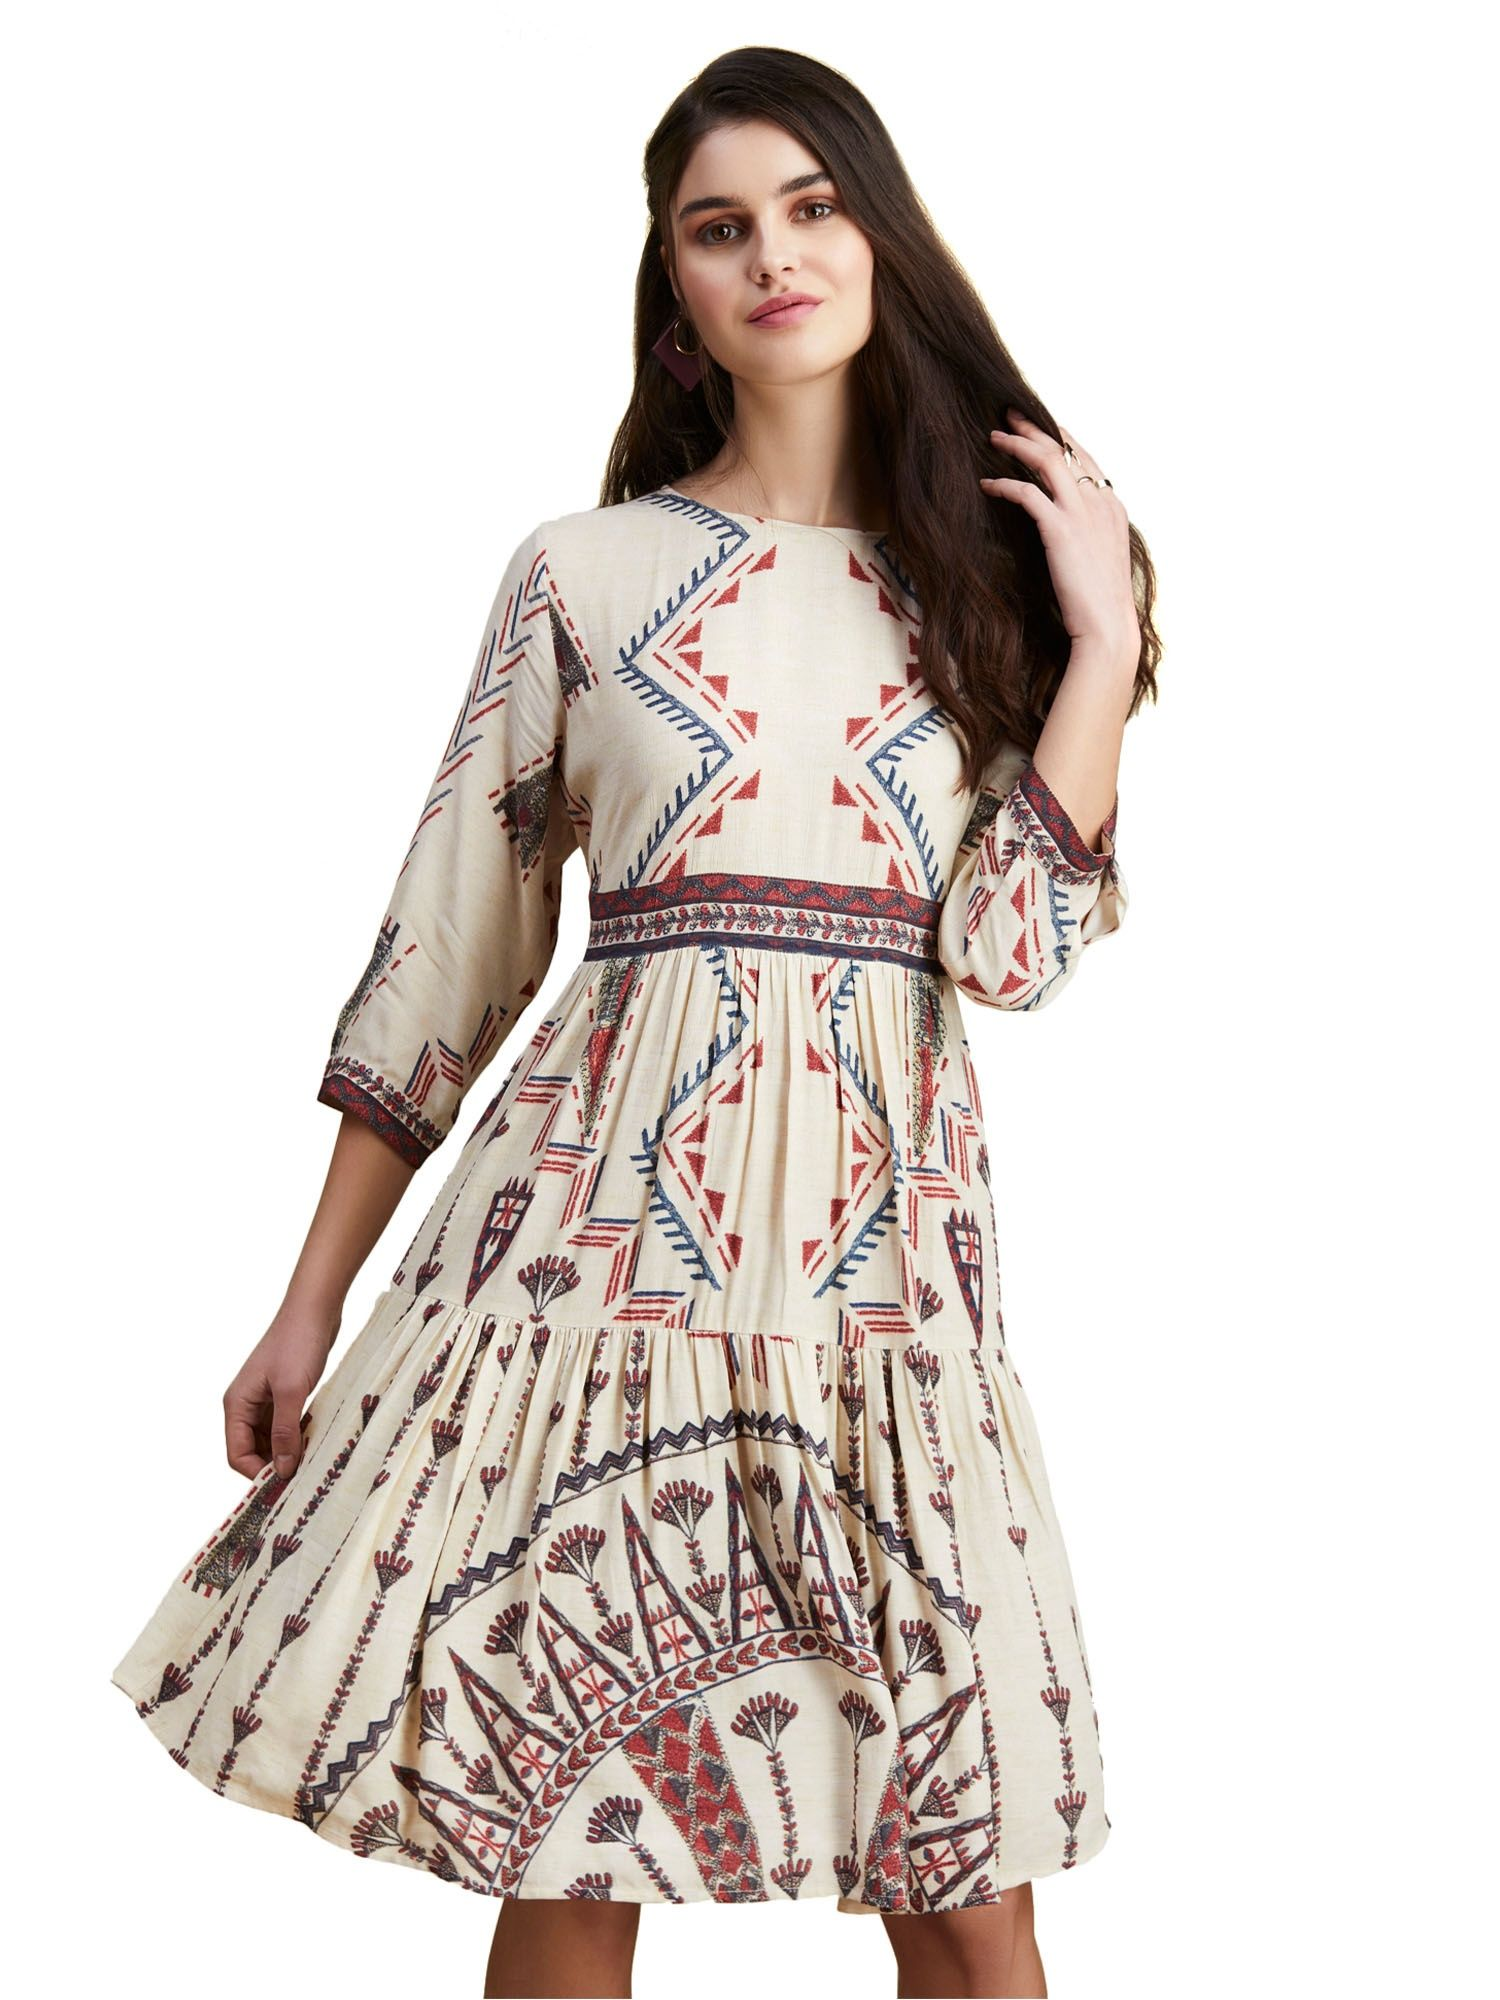 1dac31ed9f Label Ritu Kumar Dresses   Buy Label Ritu Kumar Ecru Abstract Print ...